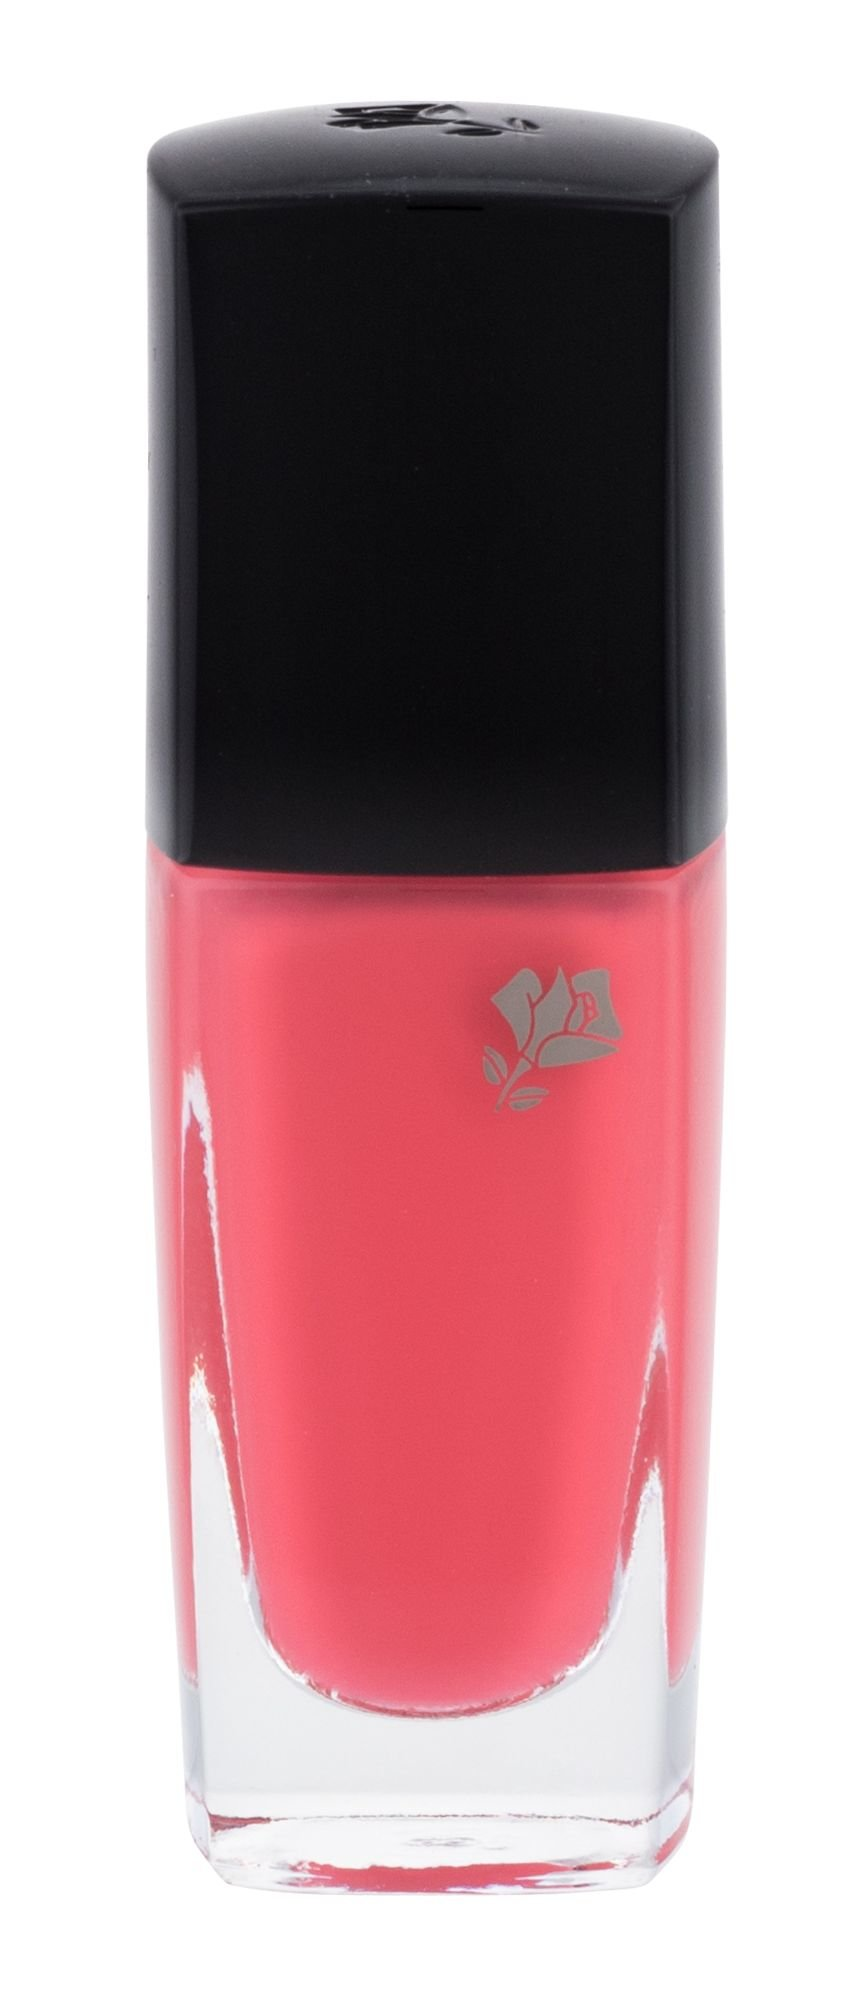 Lancôme Vernis In Love Cosmetic 6ml 362B